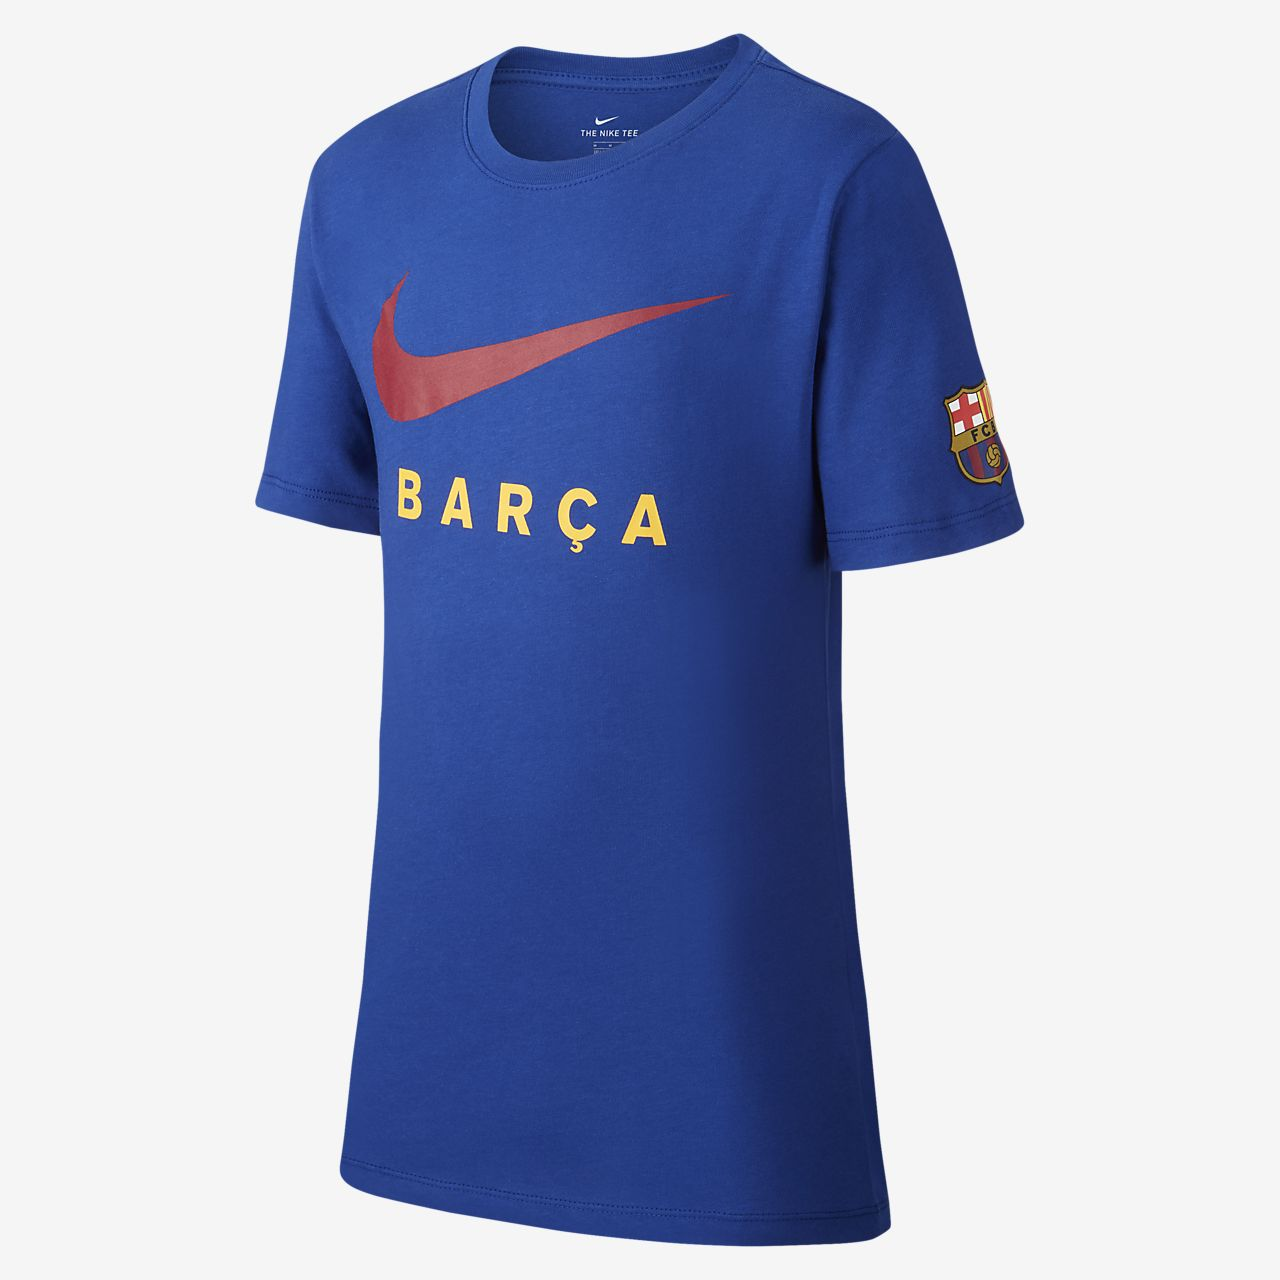 FC Barcelona Older Kids' Football T-Shirt